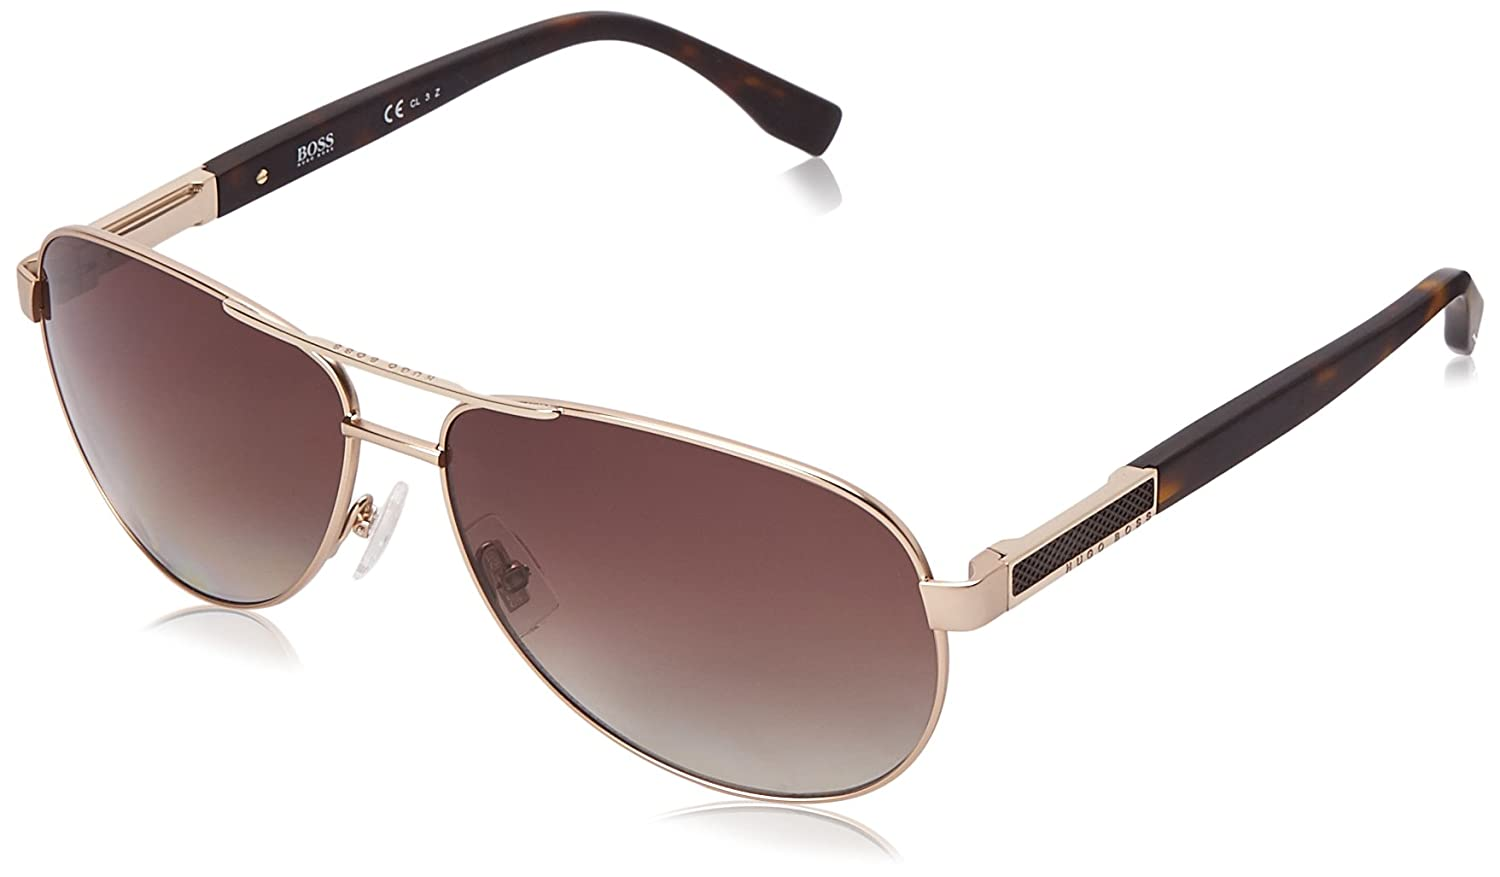 c64d0cf6d8 Amazon.com  BOSS by Hugo Boss Men s B0705ps Aviator